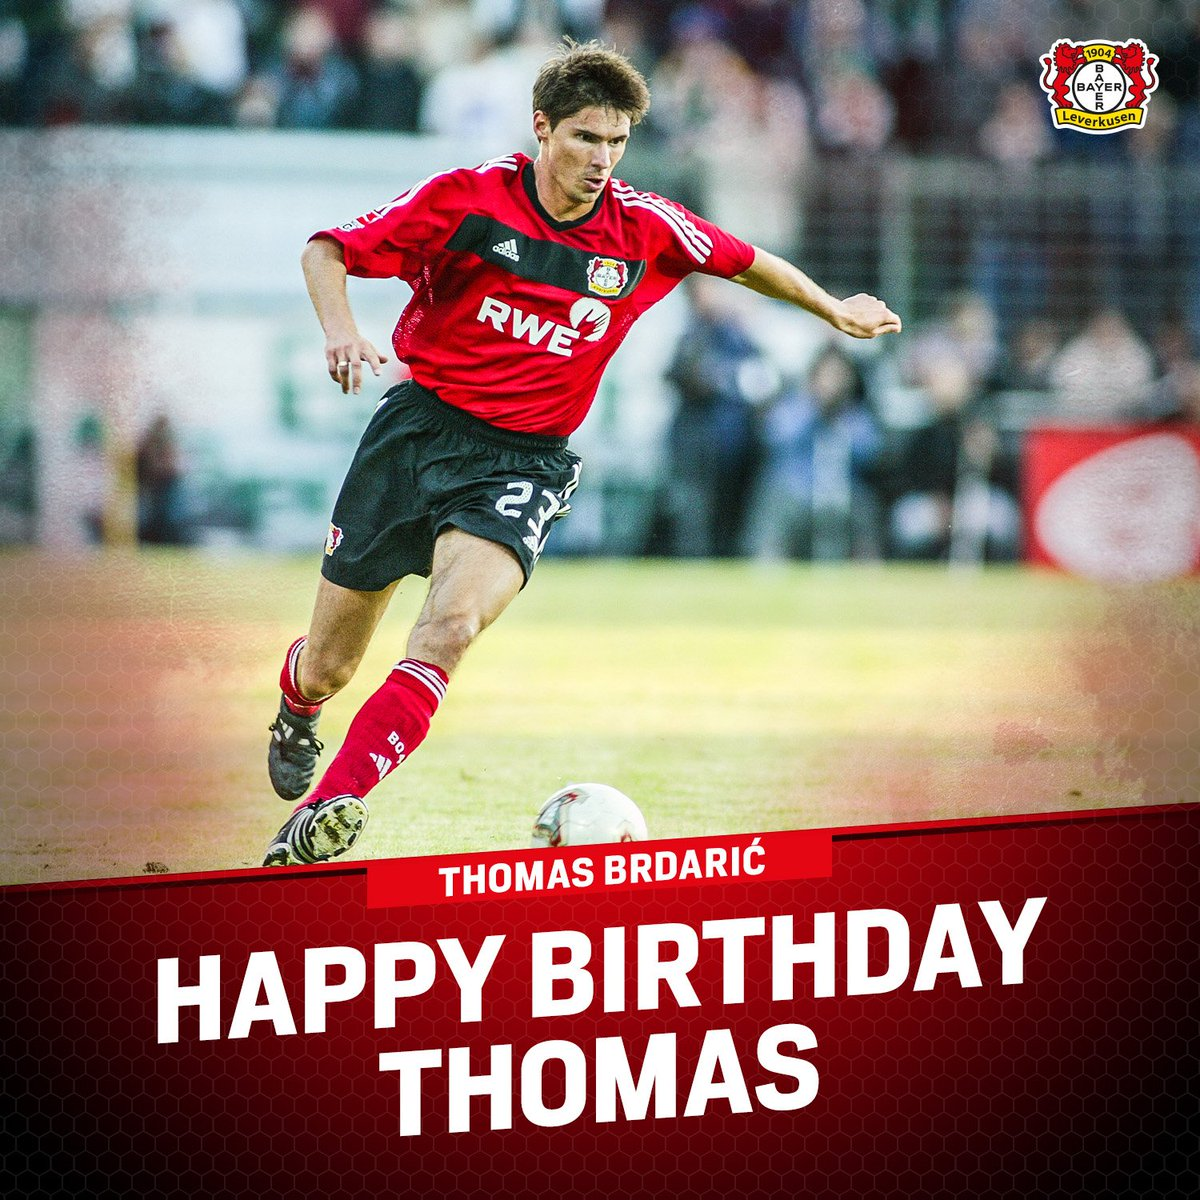 Big birthday shoutout to one of our former #Werkself Thomas Brdarić!  Hope your 4️⃣3️⃣rd is the best one yet!  ⚫🔴⚫🔴⚫🔴 https://t.co/u7ehO9CcqW